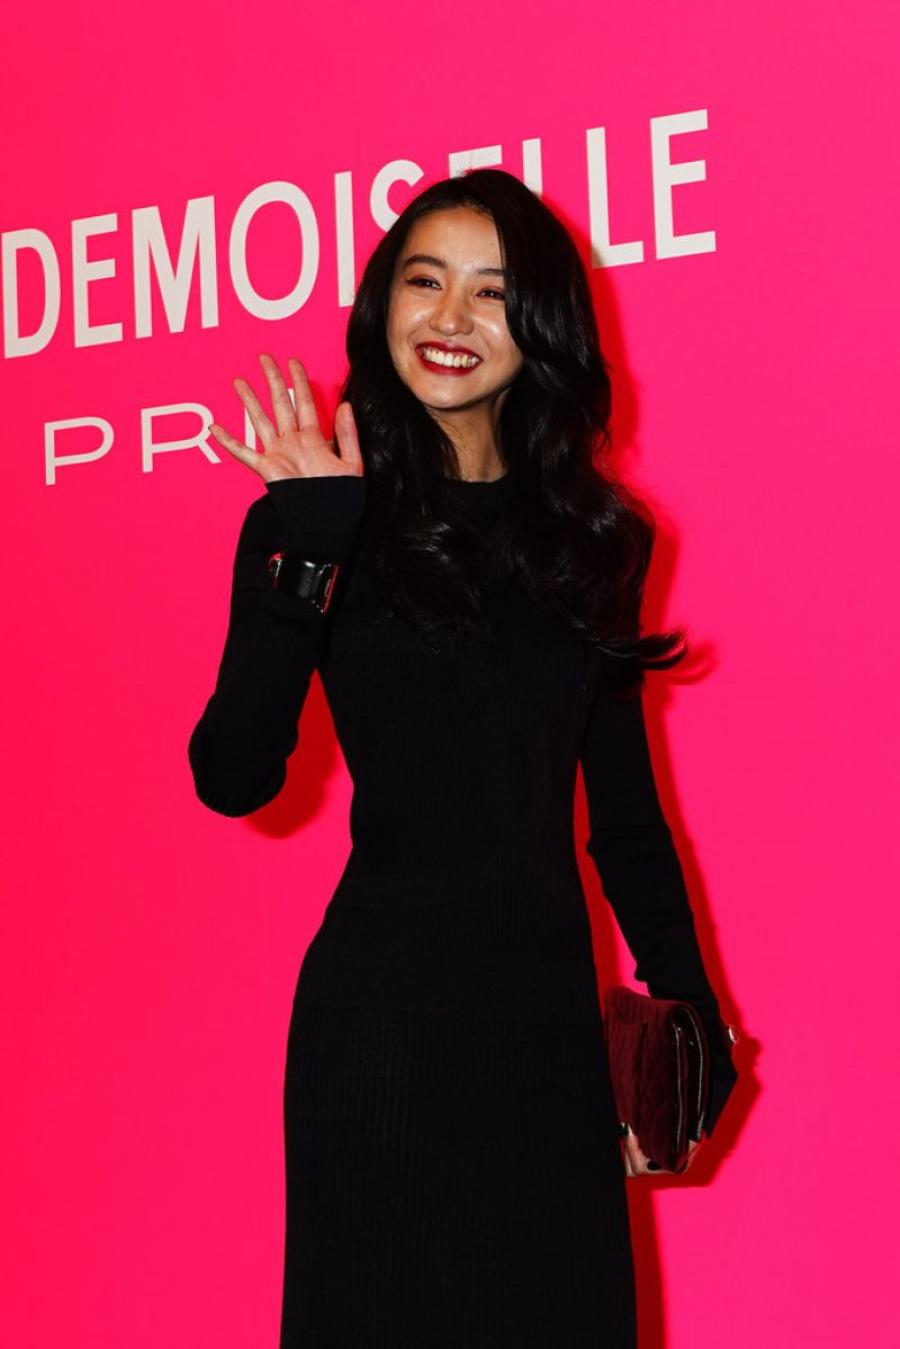 Mitsuki Kimura at Mademoiselle Prive Chanel Exhibition Opening Party